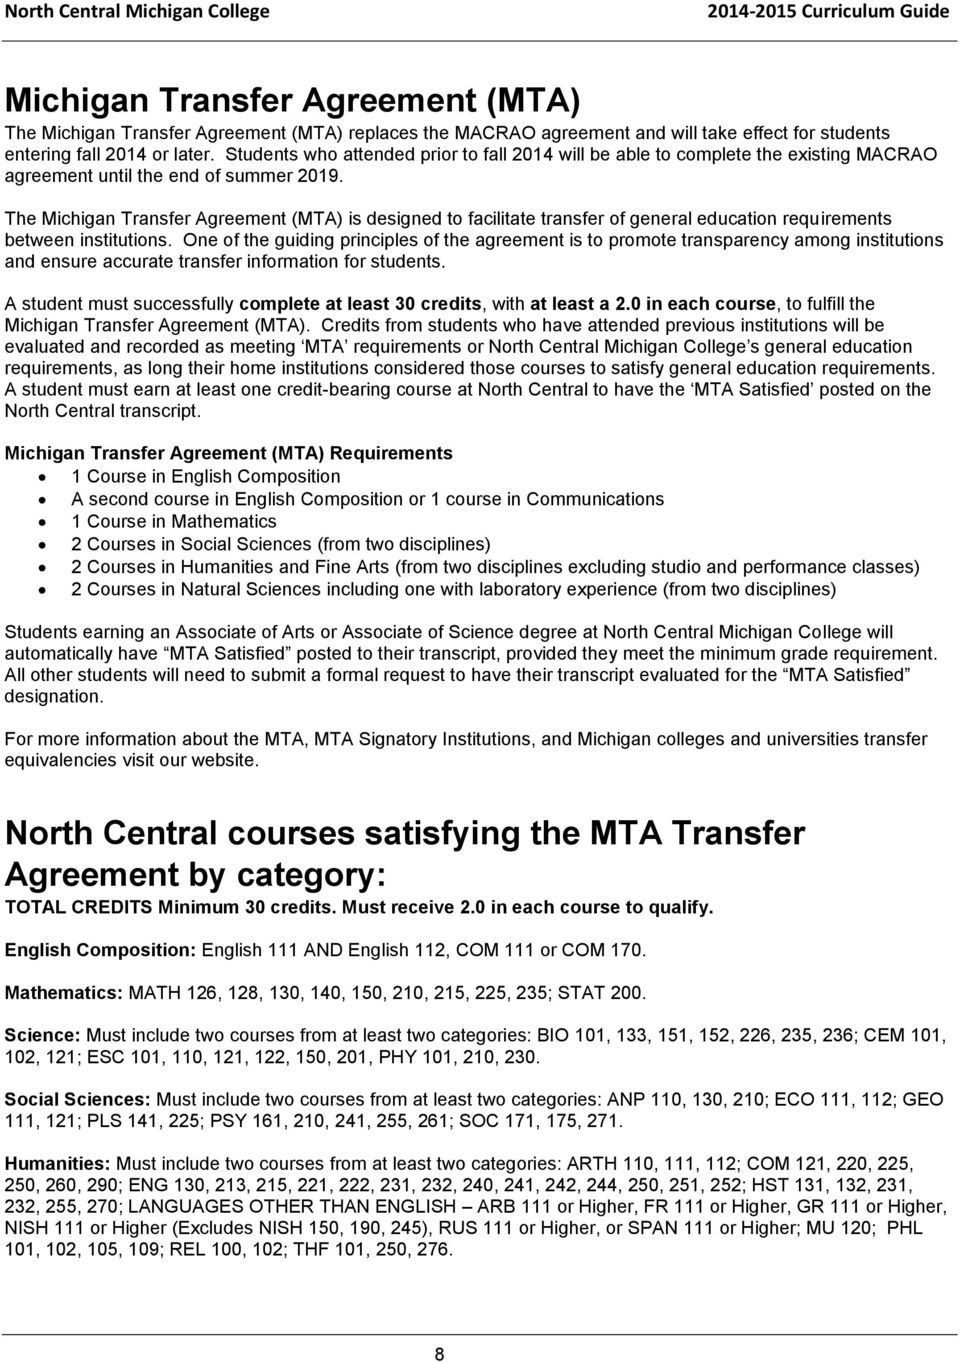 The Michigan Transfer Agreement (MTA) is designed to facilitate transfer of general education requirements between institutions.